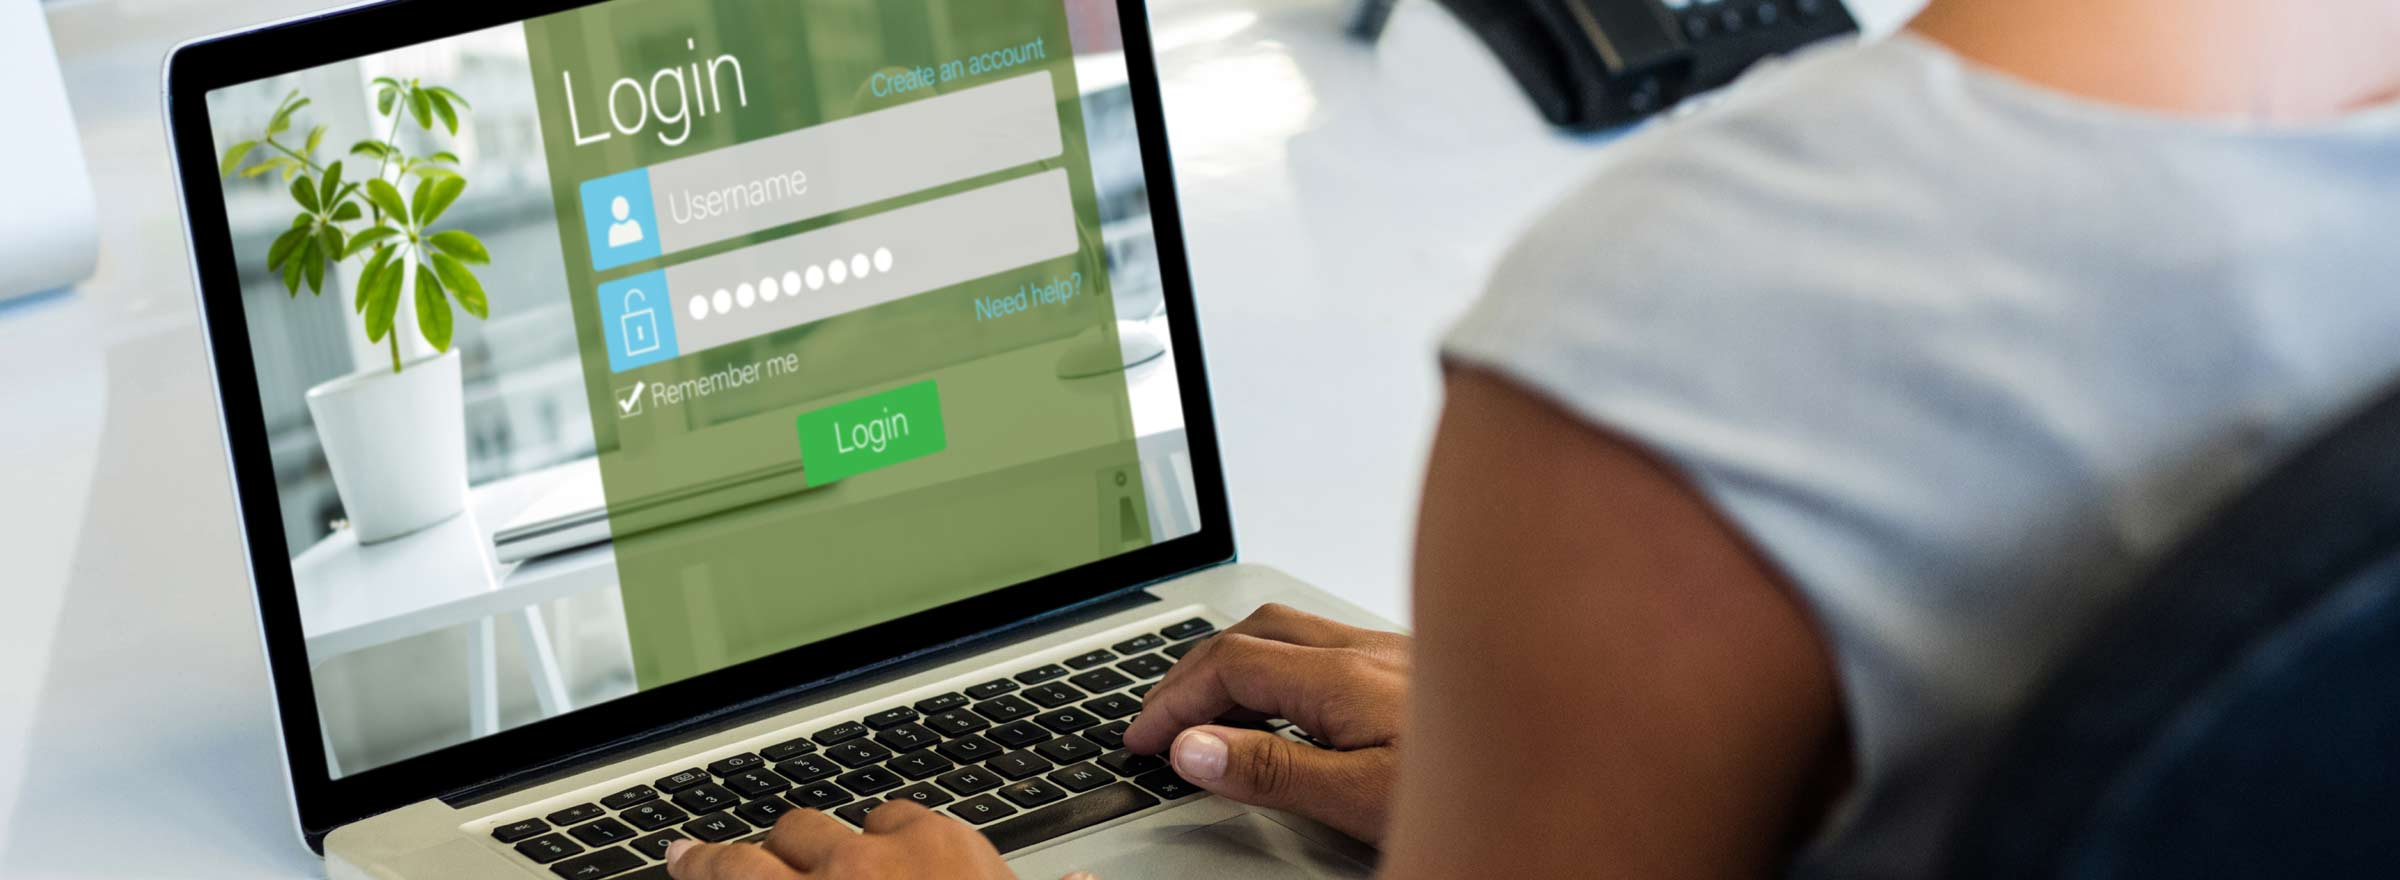 woman looking at a login screen symbolizing improved identity management through Okta for Good